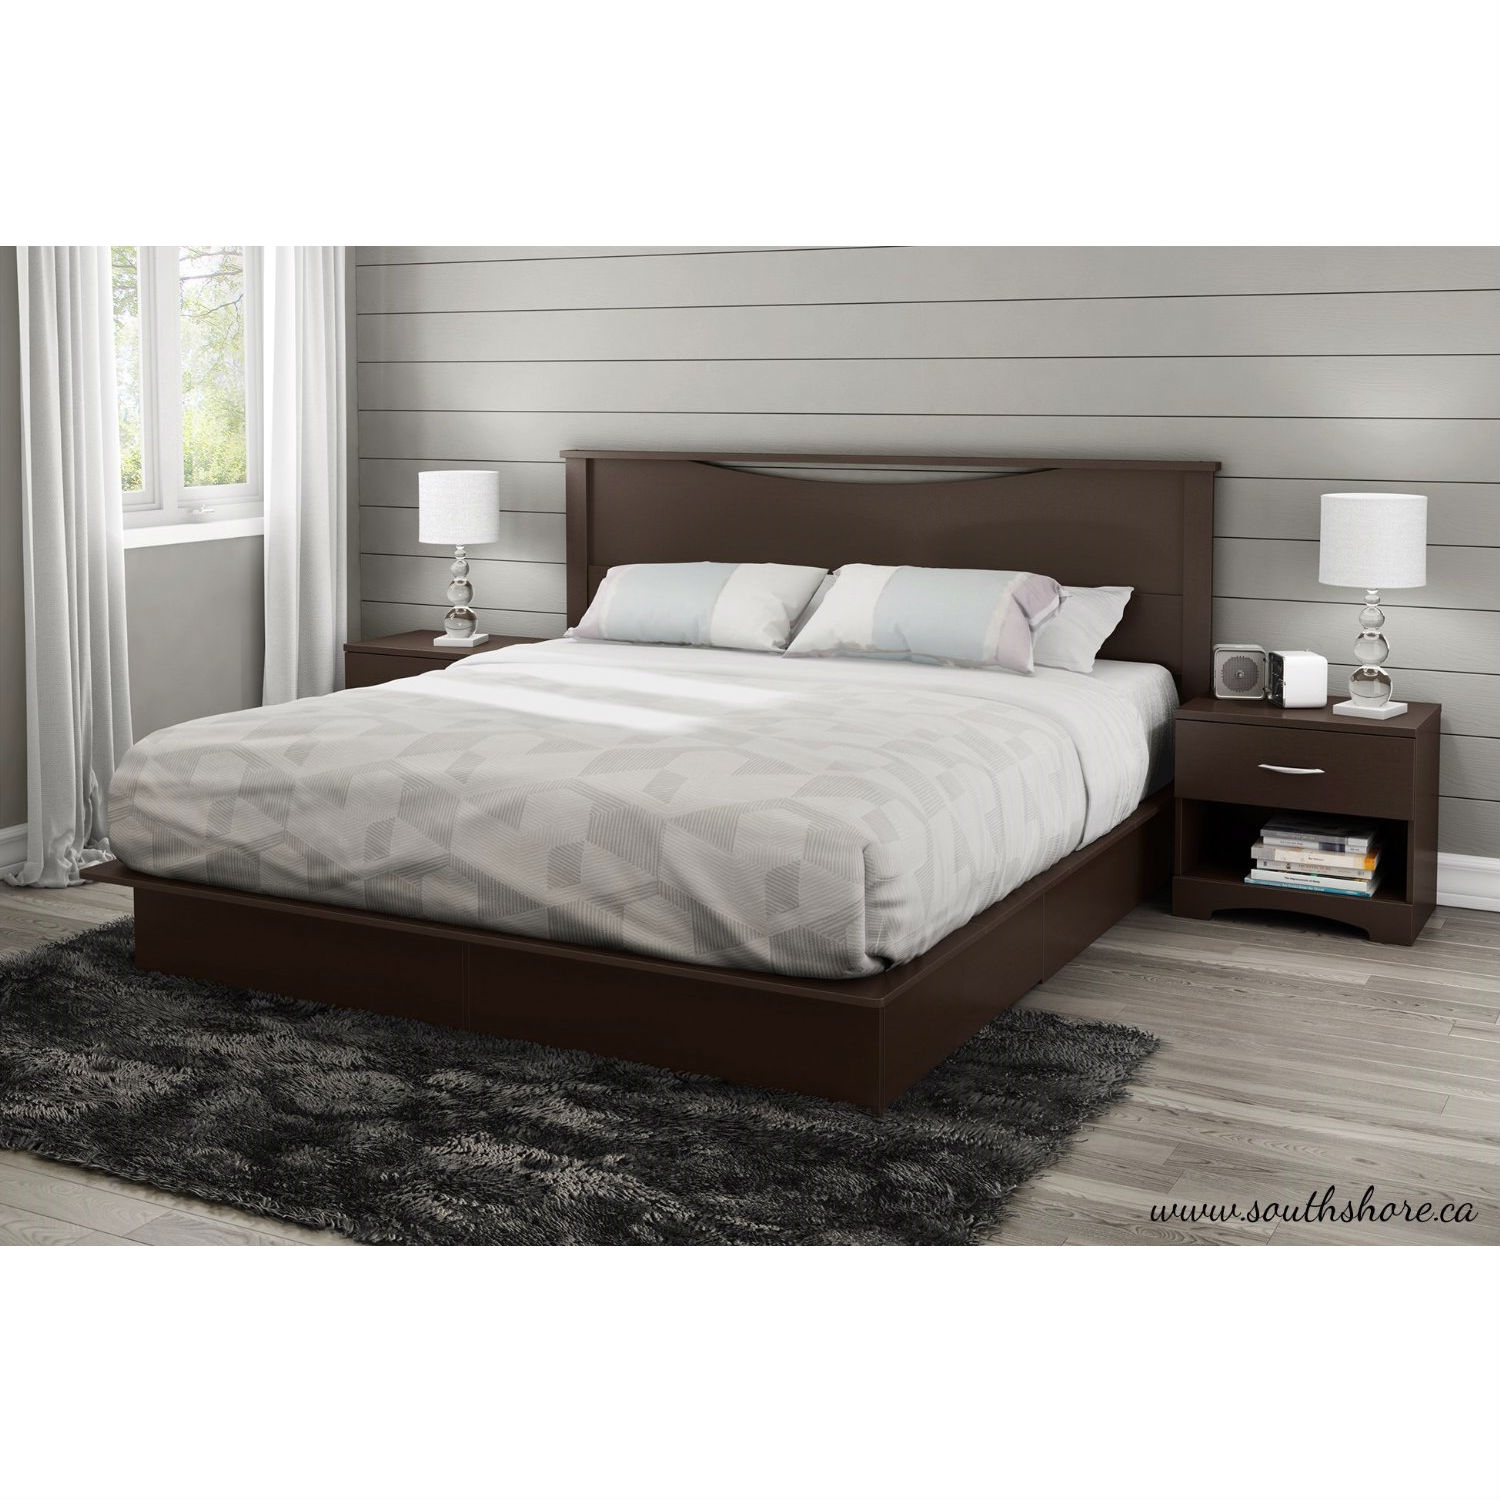 king size modern platform bed with 2 storage drawers in chocolate ebay. Black Bedroom Furniture Sets. Home Design Ideas